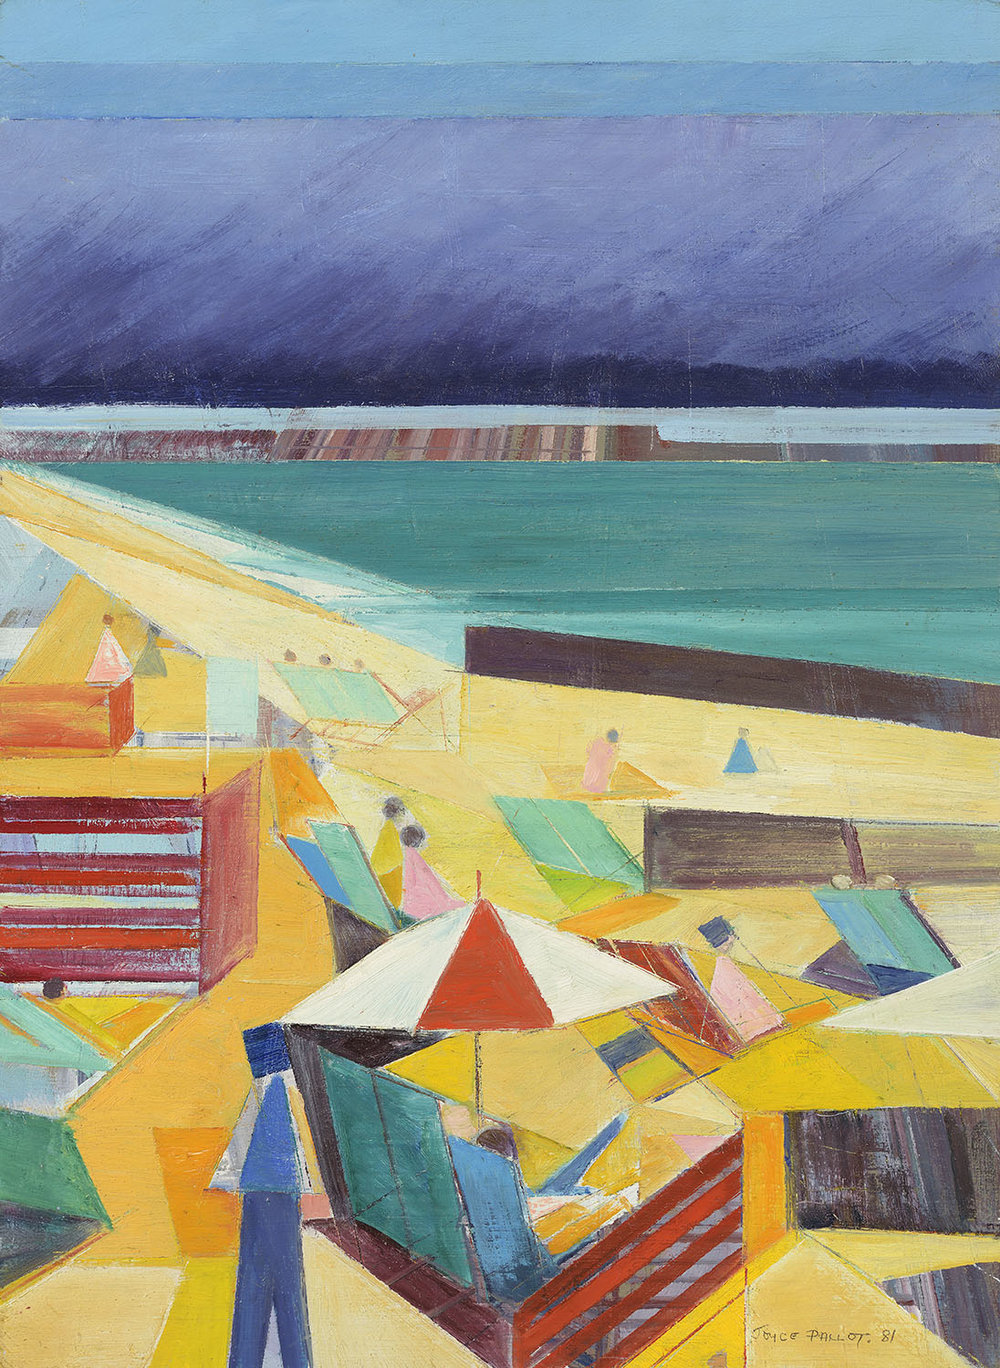 Joyce Pallot (1912-2004)    Essex Seaside,  1981, Oil on board, 15 ½ x 11 ½ in, Signed and dated  [CAS 60]